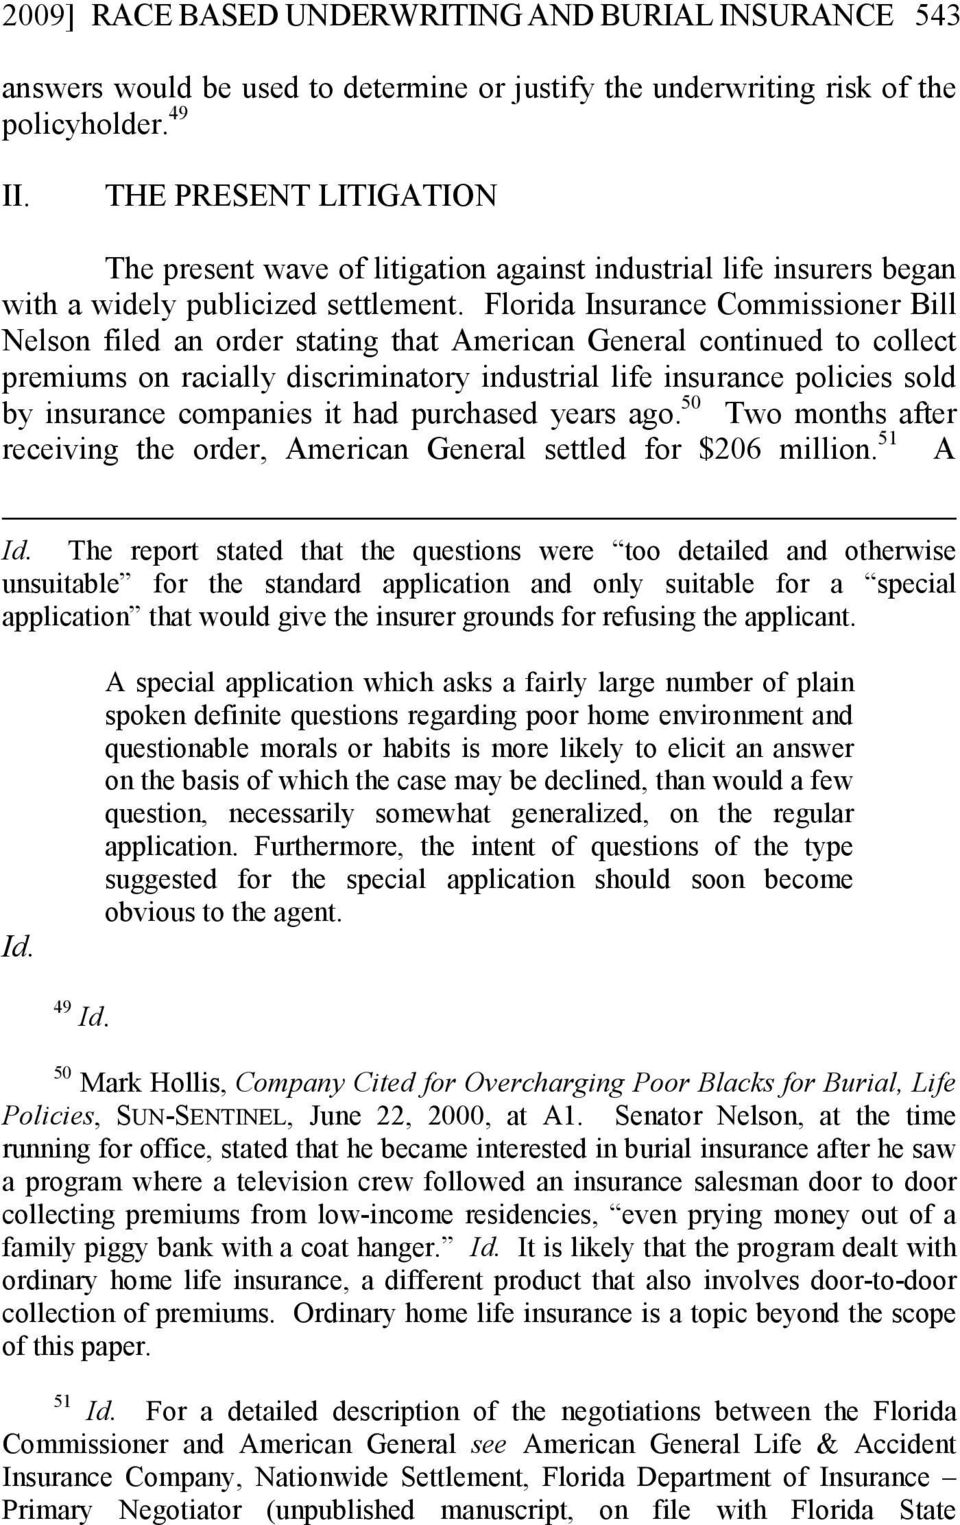 Florida Insurance Commissioner Bill Nelson filed an order stating that American General continued to collect premiums on racially discriminatory industrial life insurance policies sold by insurance